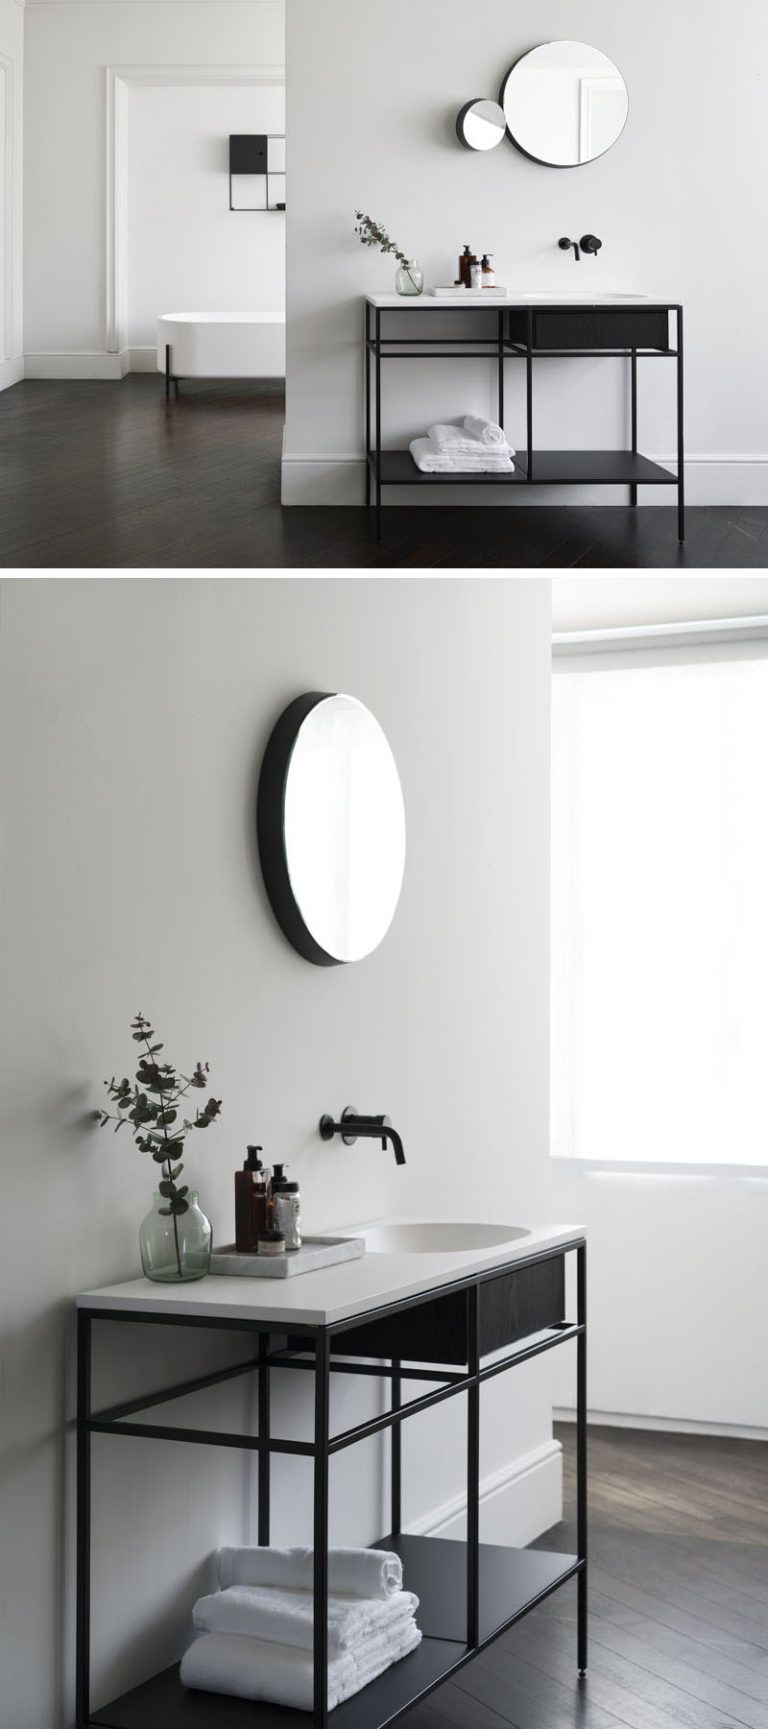 5 x 4 badezimmerdesigns norm architects have designed a collection of minimalist bathroom